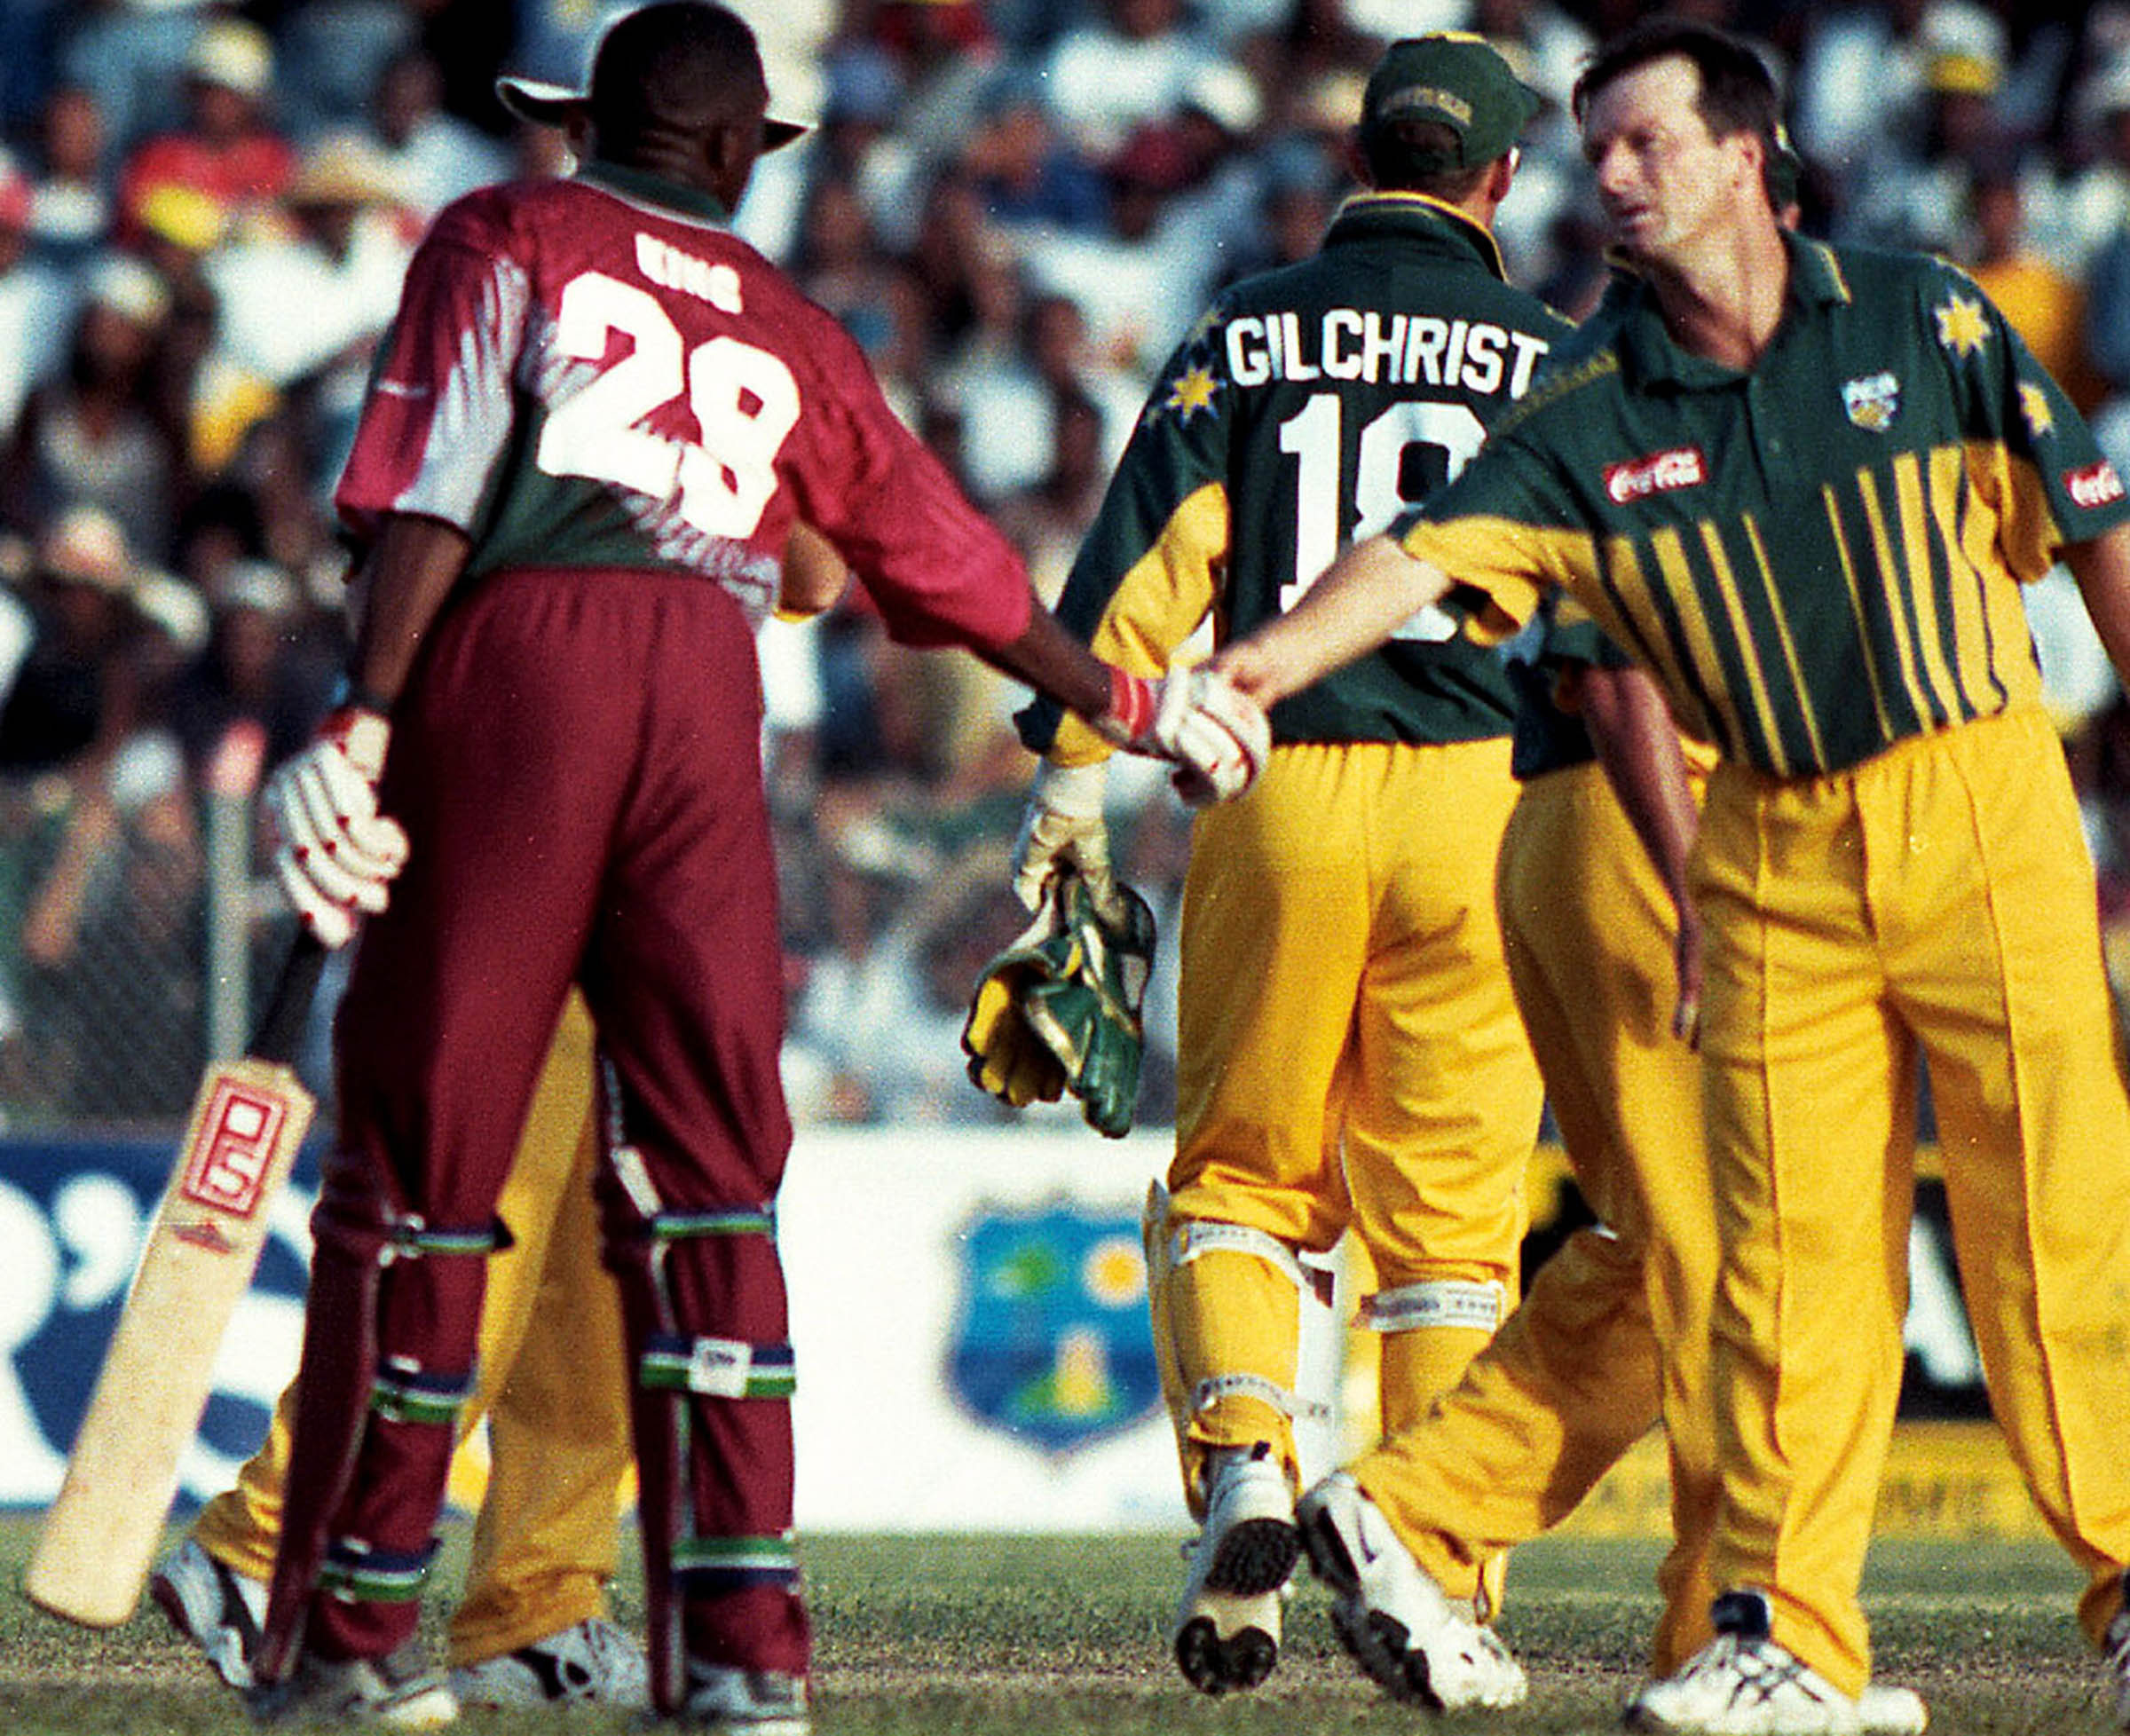 Steve Waugh knew he was under pressure for his place // Getty